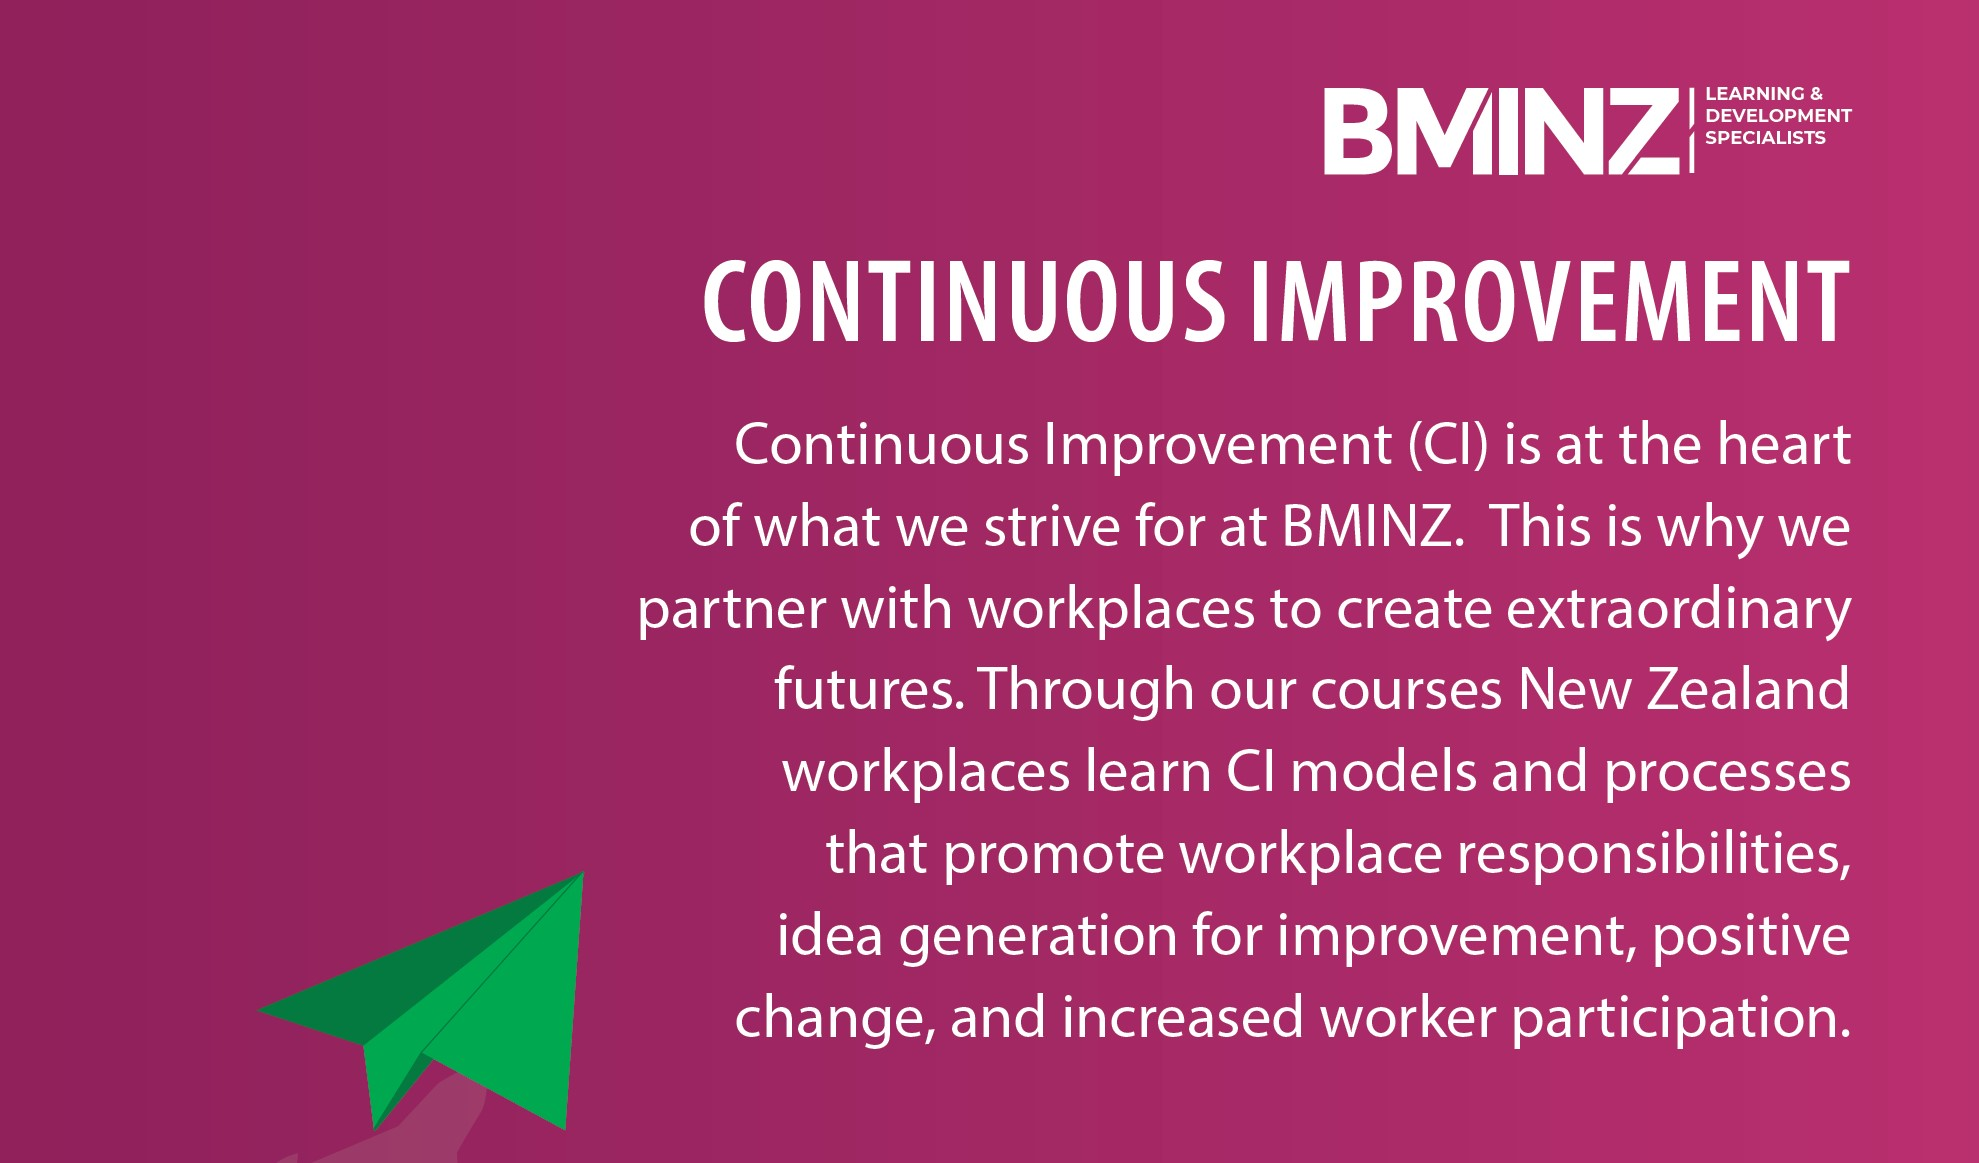 CONTINUOUS IMPROVEMENT (CI): is at the heart of what we strive for at BMINZ. This is why we partner with workplaces to create extraordinary futures. Through our courses New Zealand workplaces learn CI models and processes that promote workplace responsibilities, idea generation for improvement, positive change, and increased worker participation.